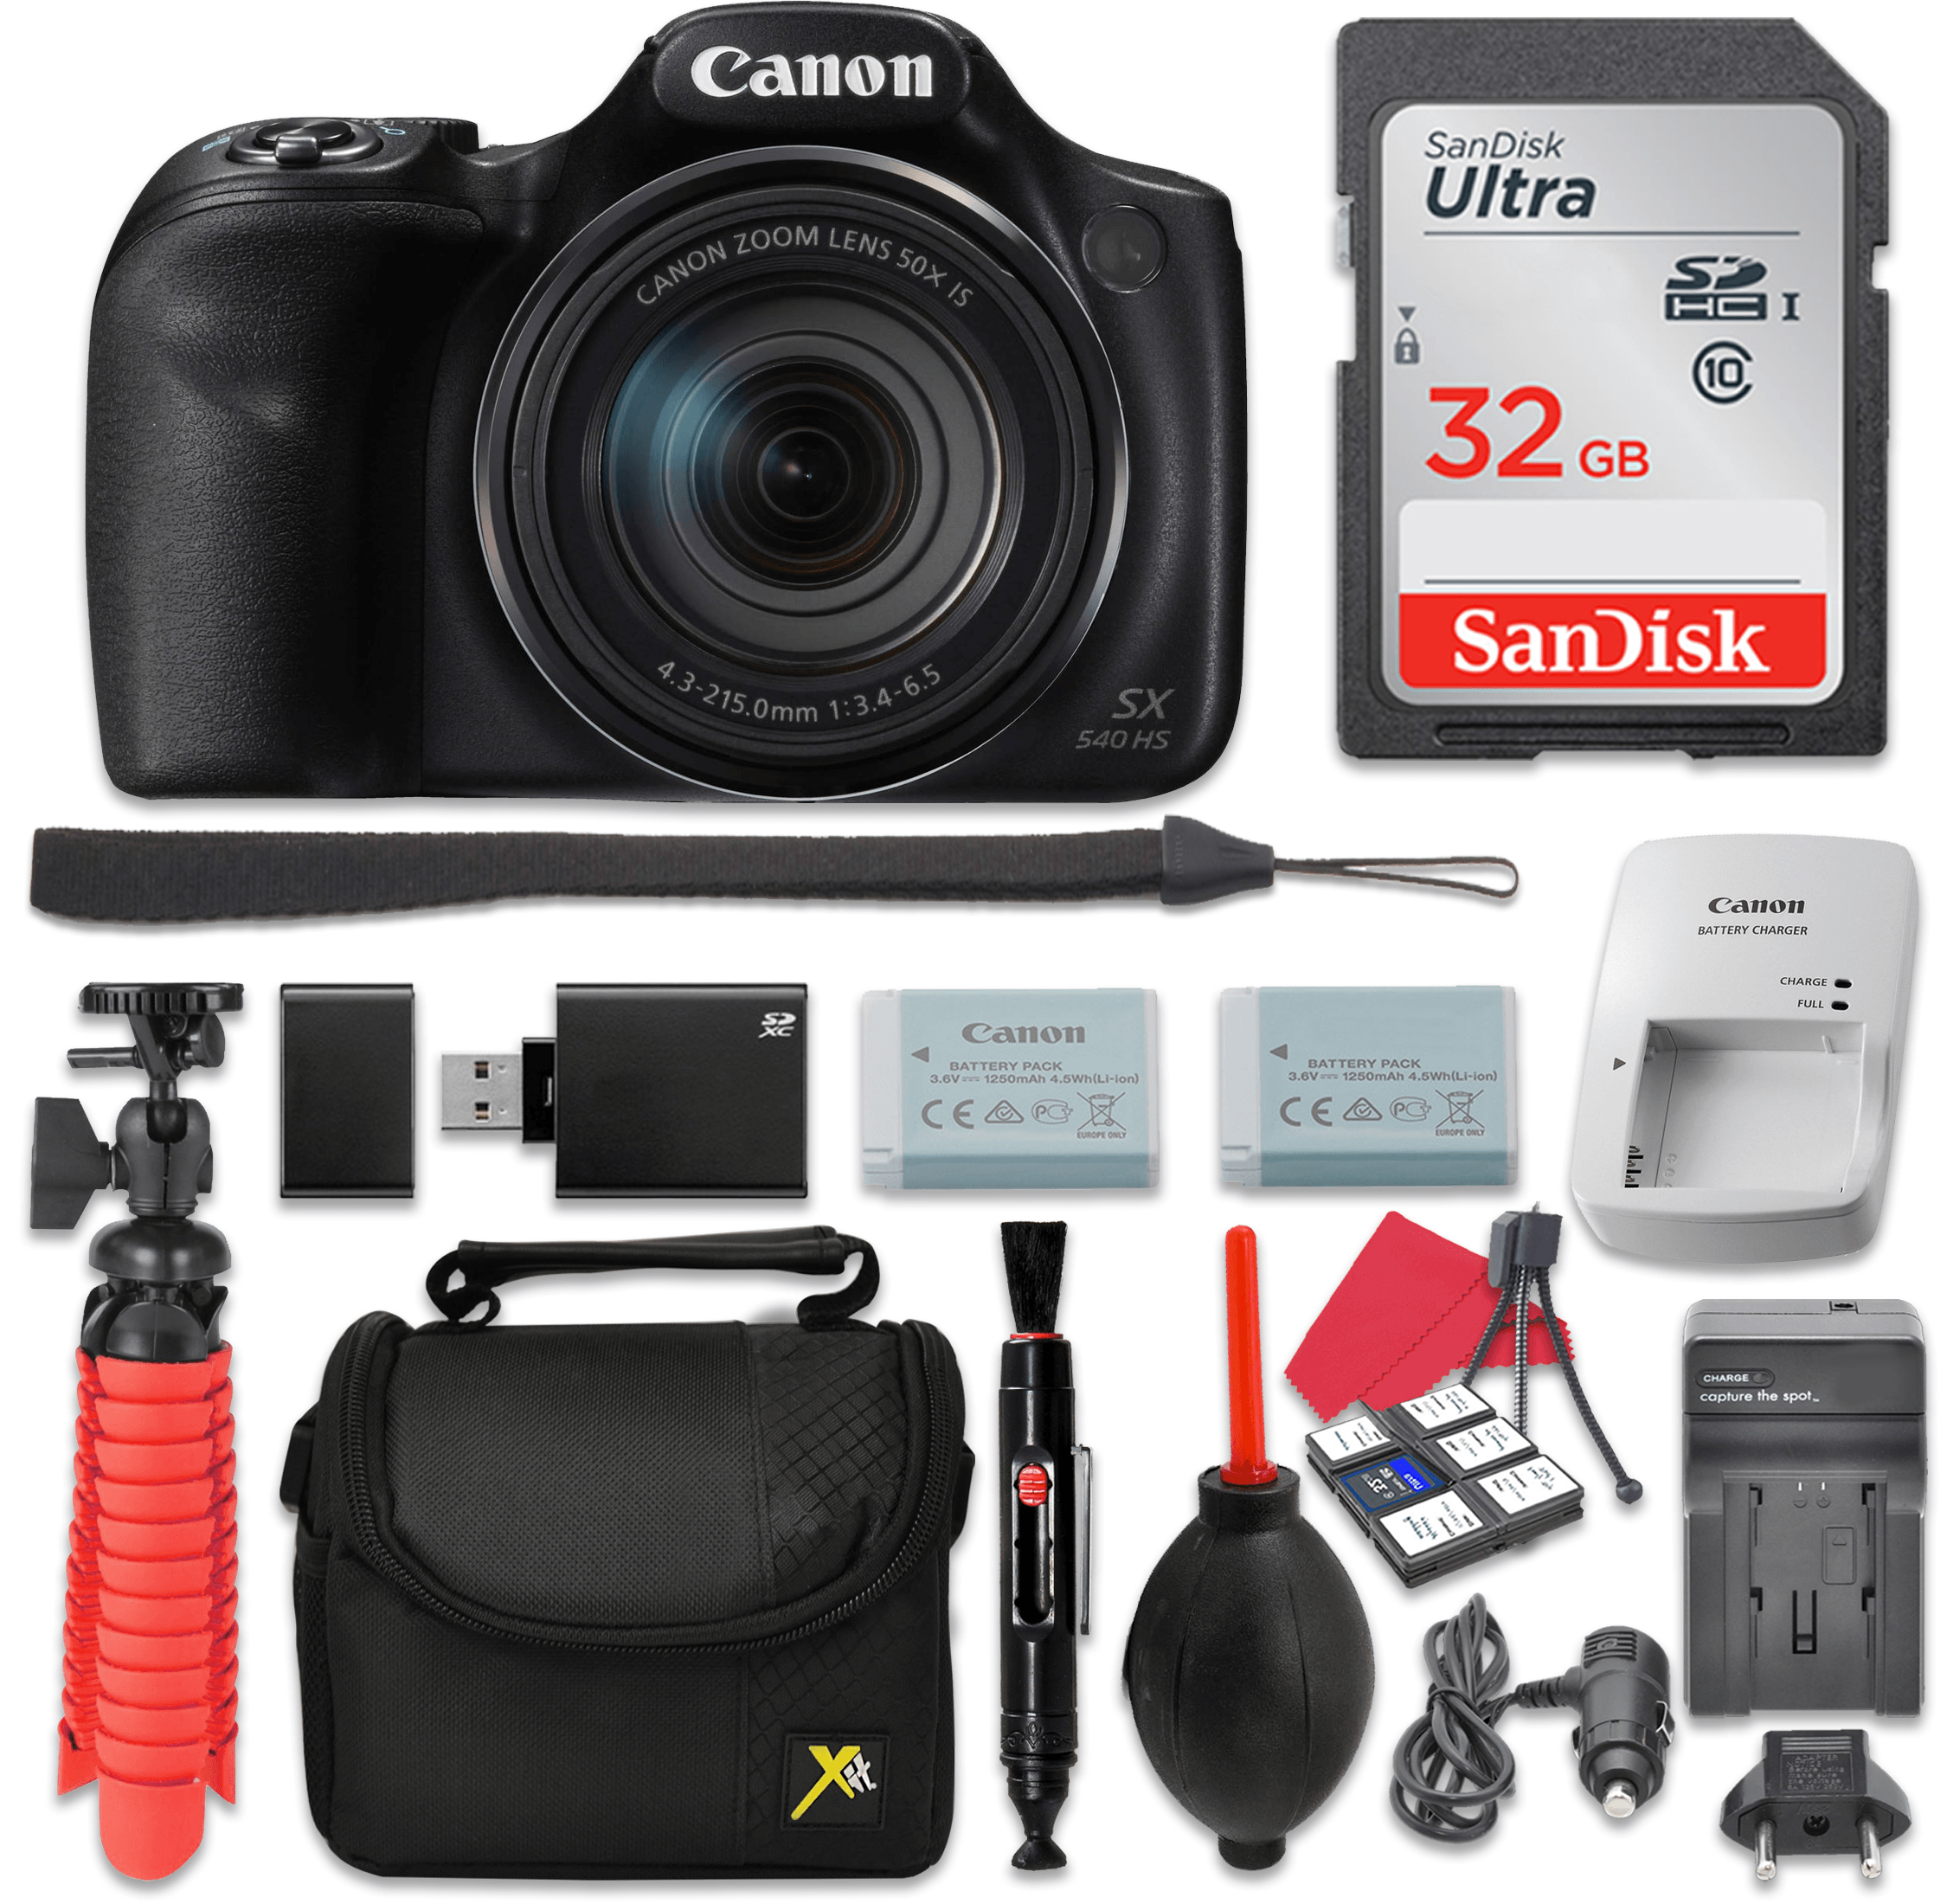 Canon PowerShot SX540 Digital Camera 50x Optical Zoom + 32GB SD + Spare Battery + Complete Accessory Bundle